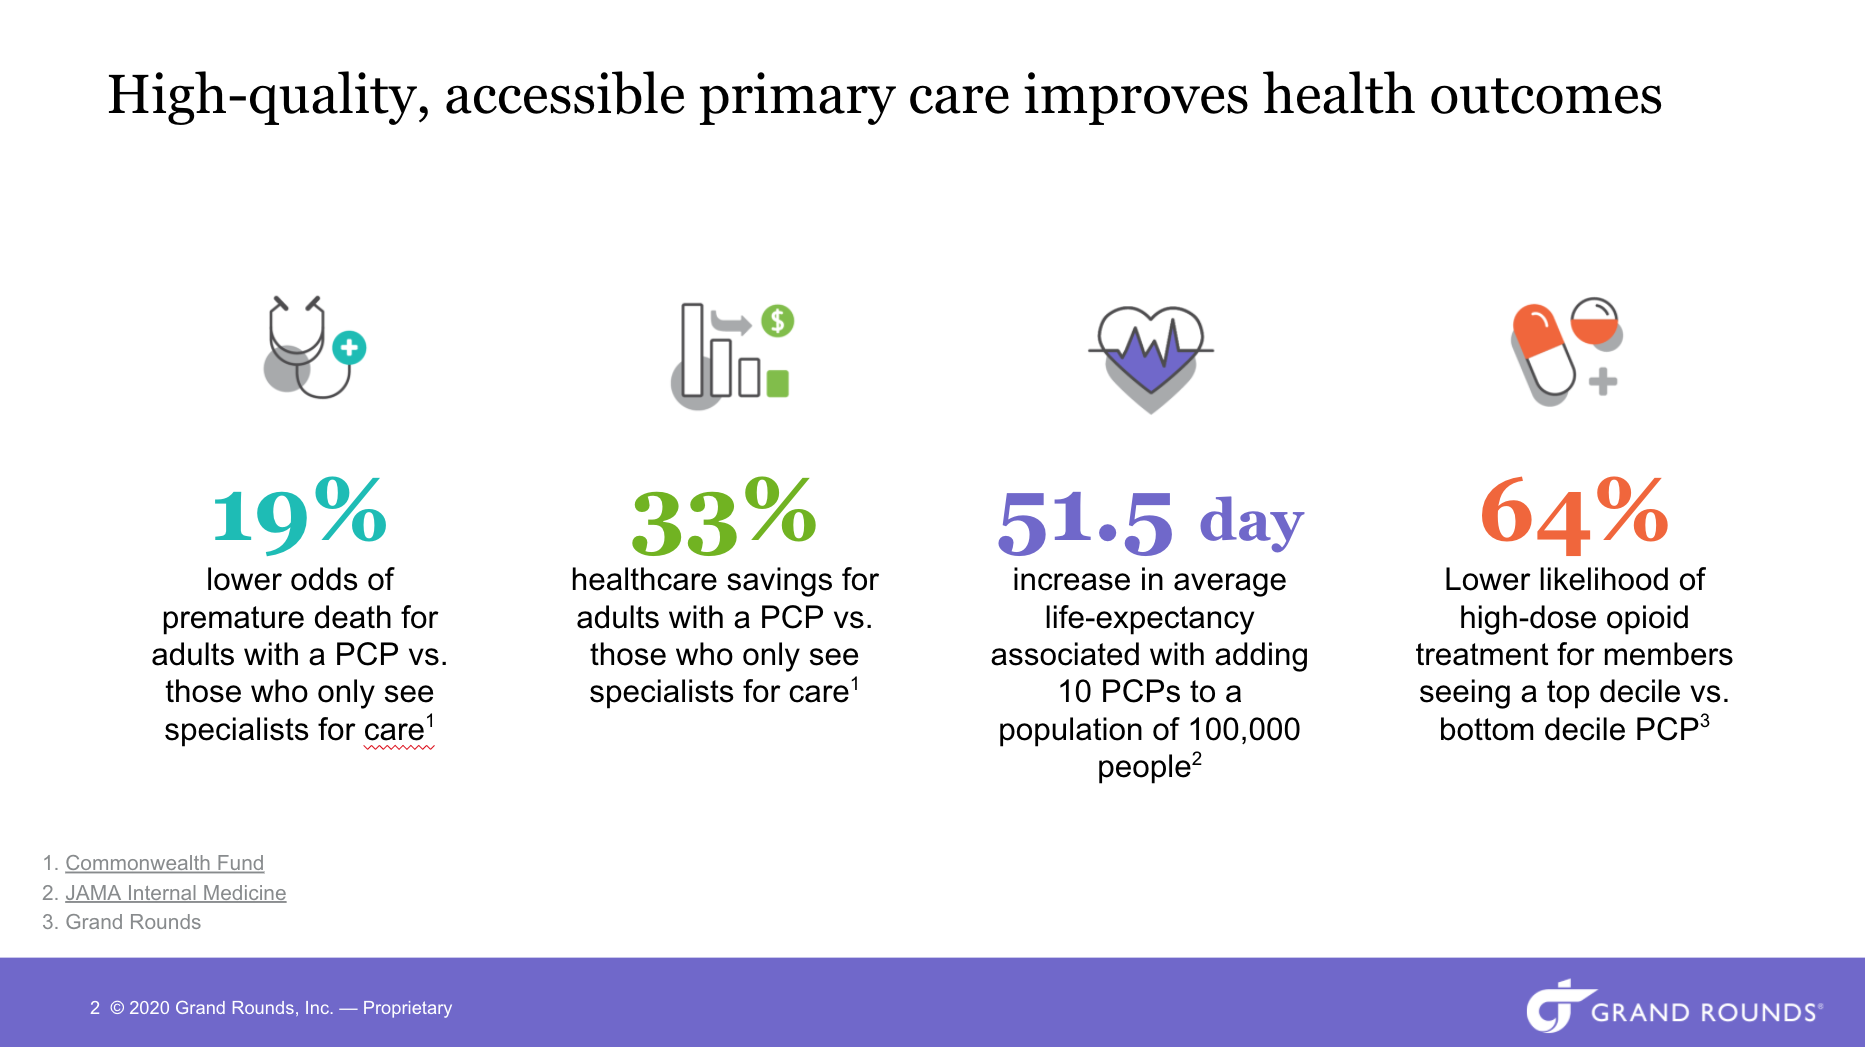 High-quality, accessible primary care improves health outcomes